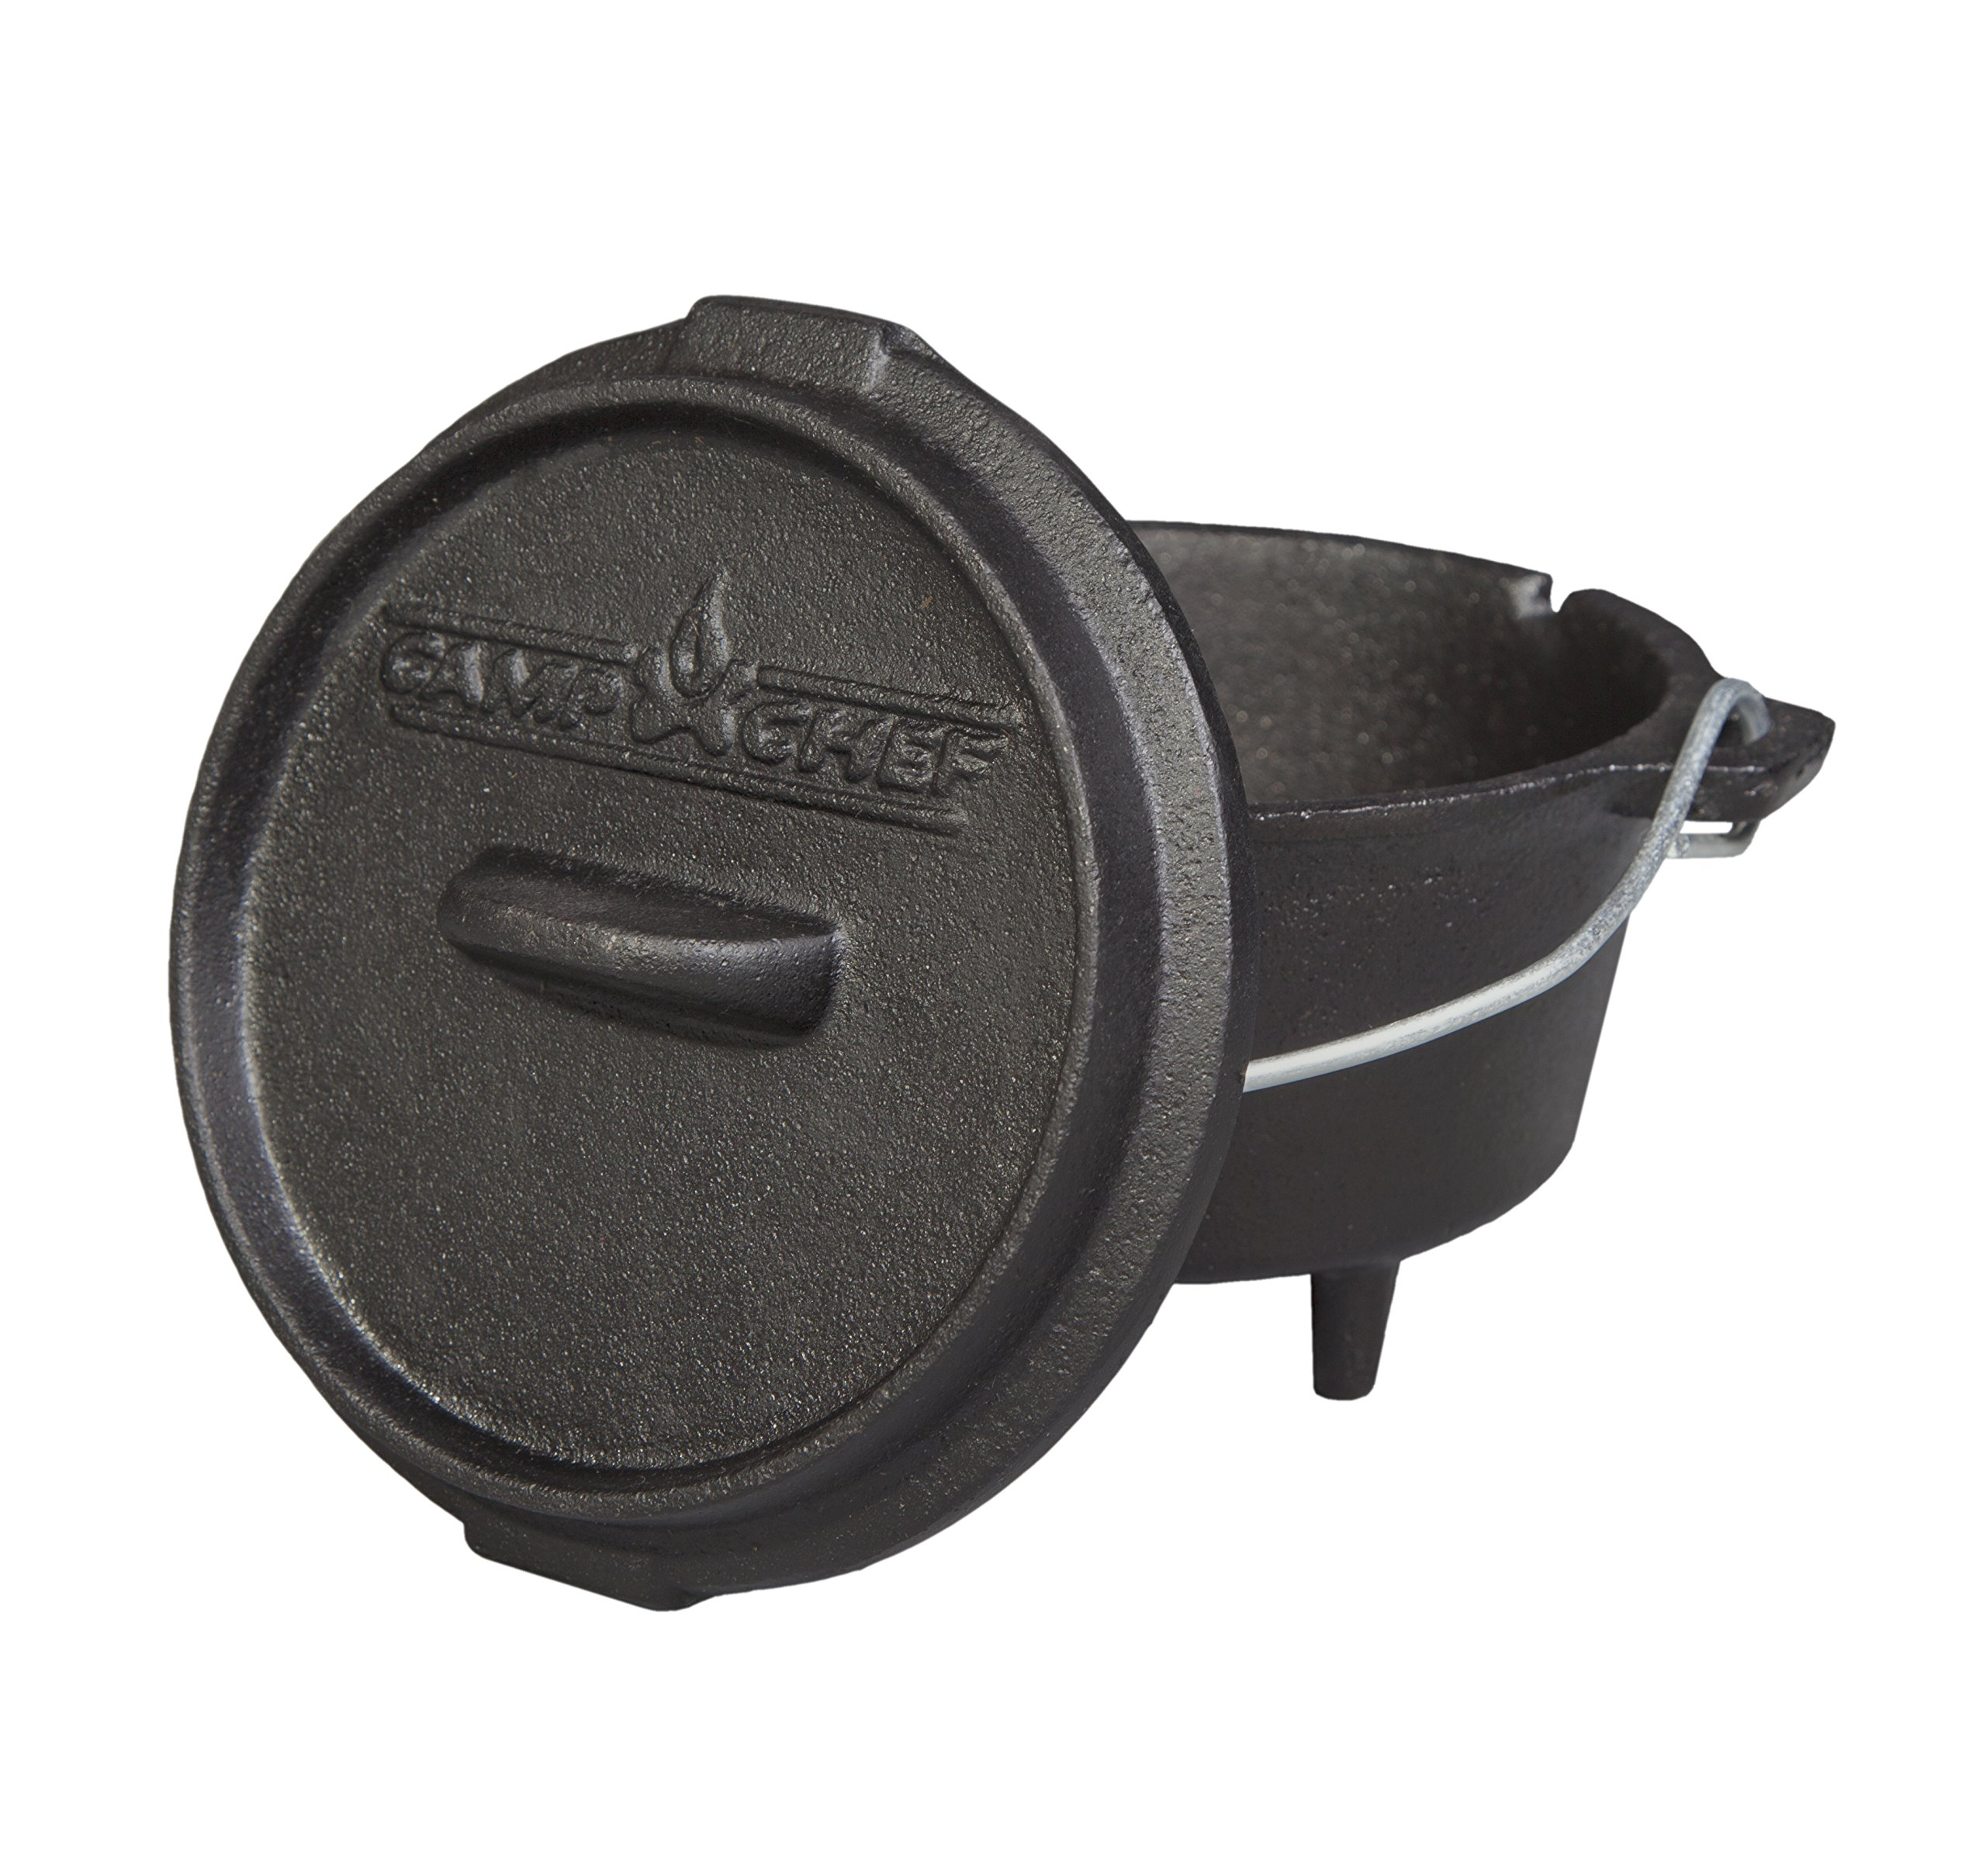 The Camp Chef DO-5-Mini 3/4 Quart Dutch Oven